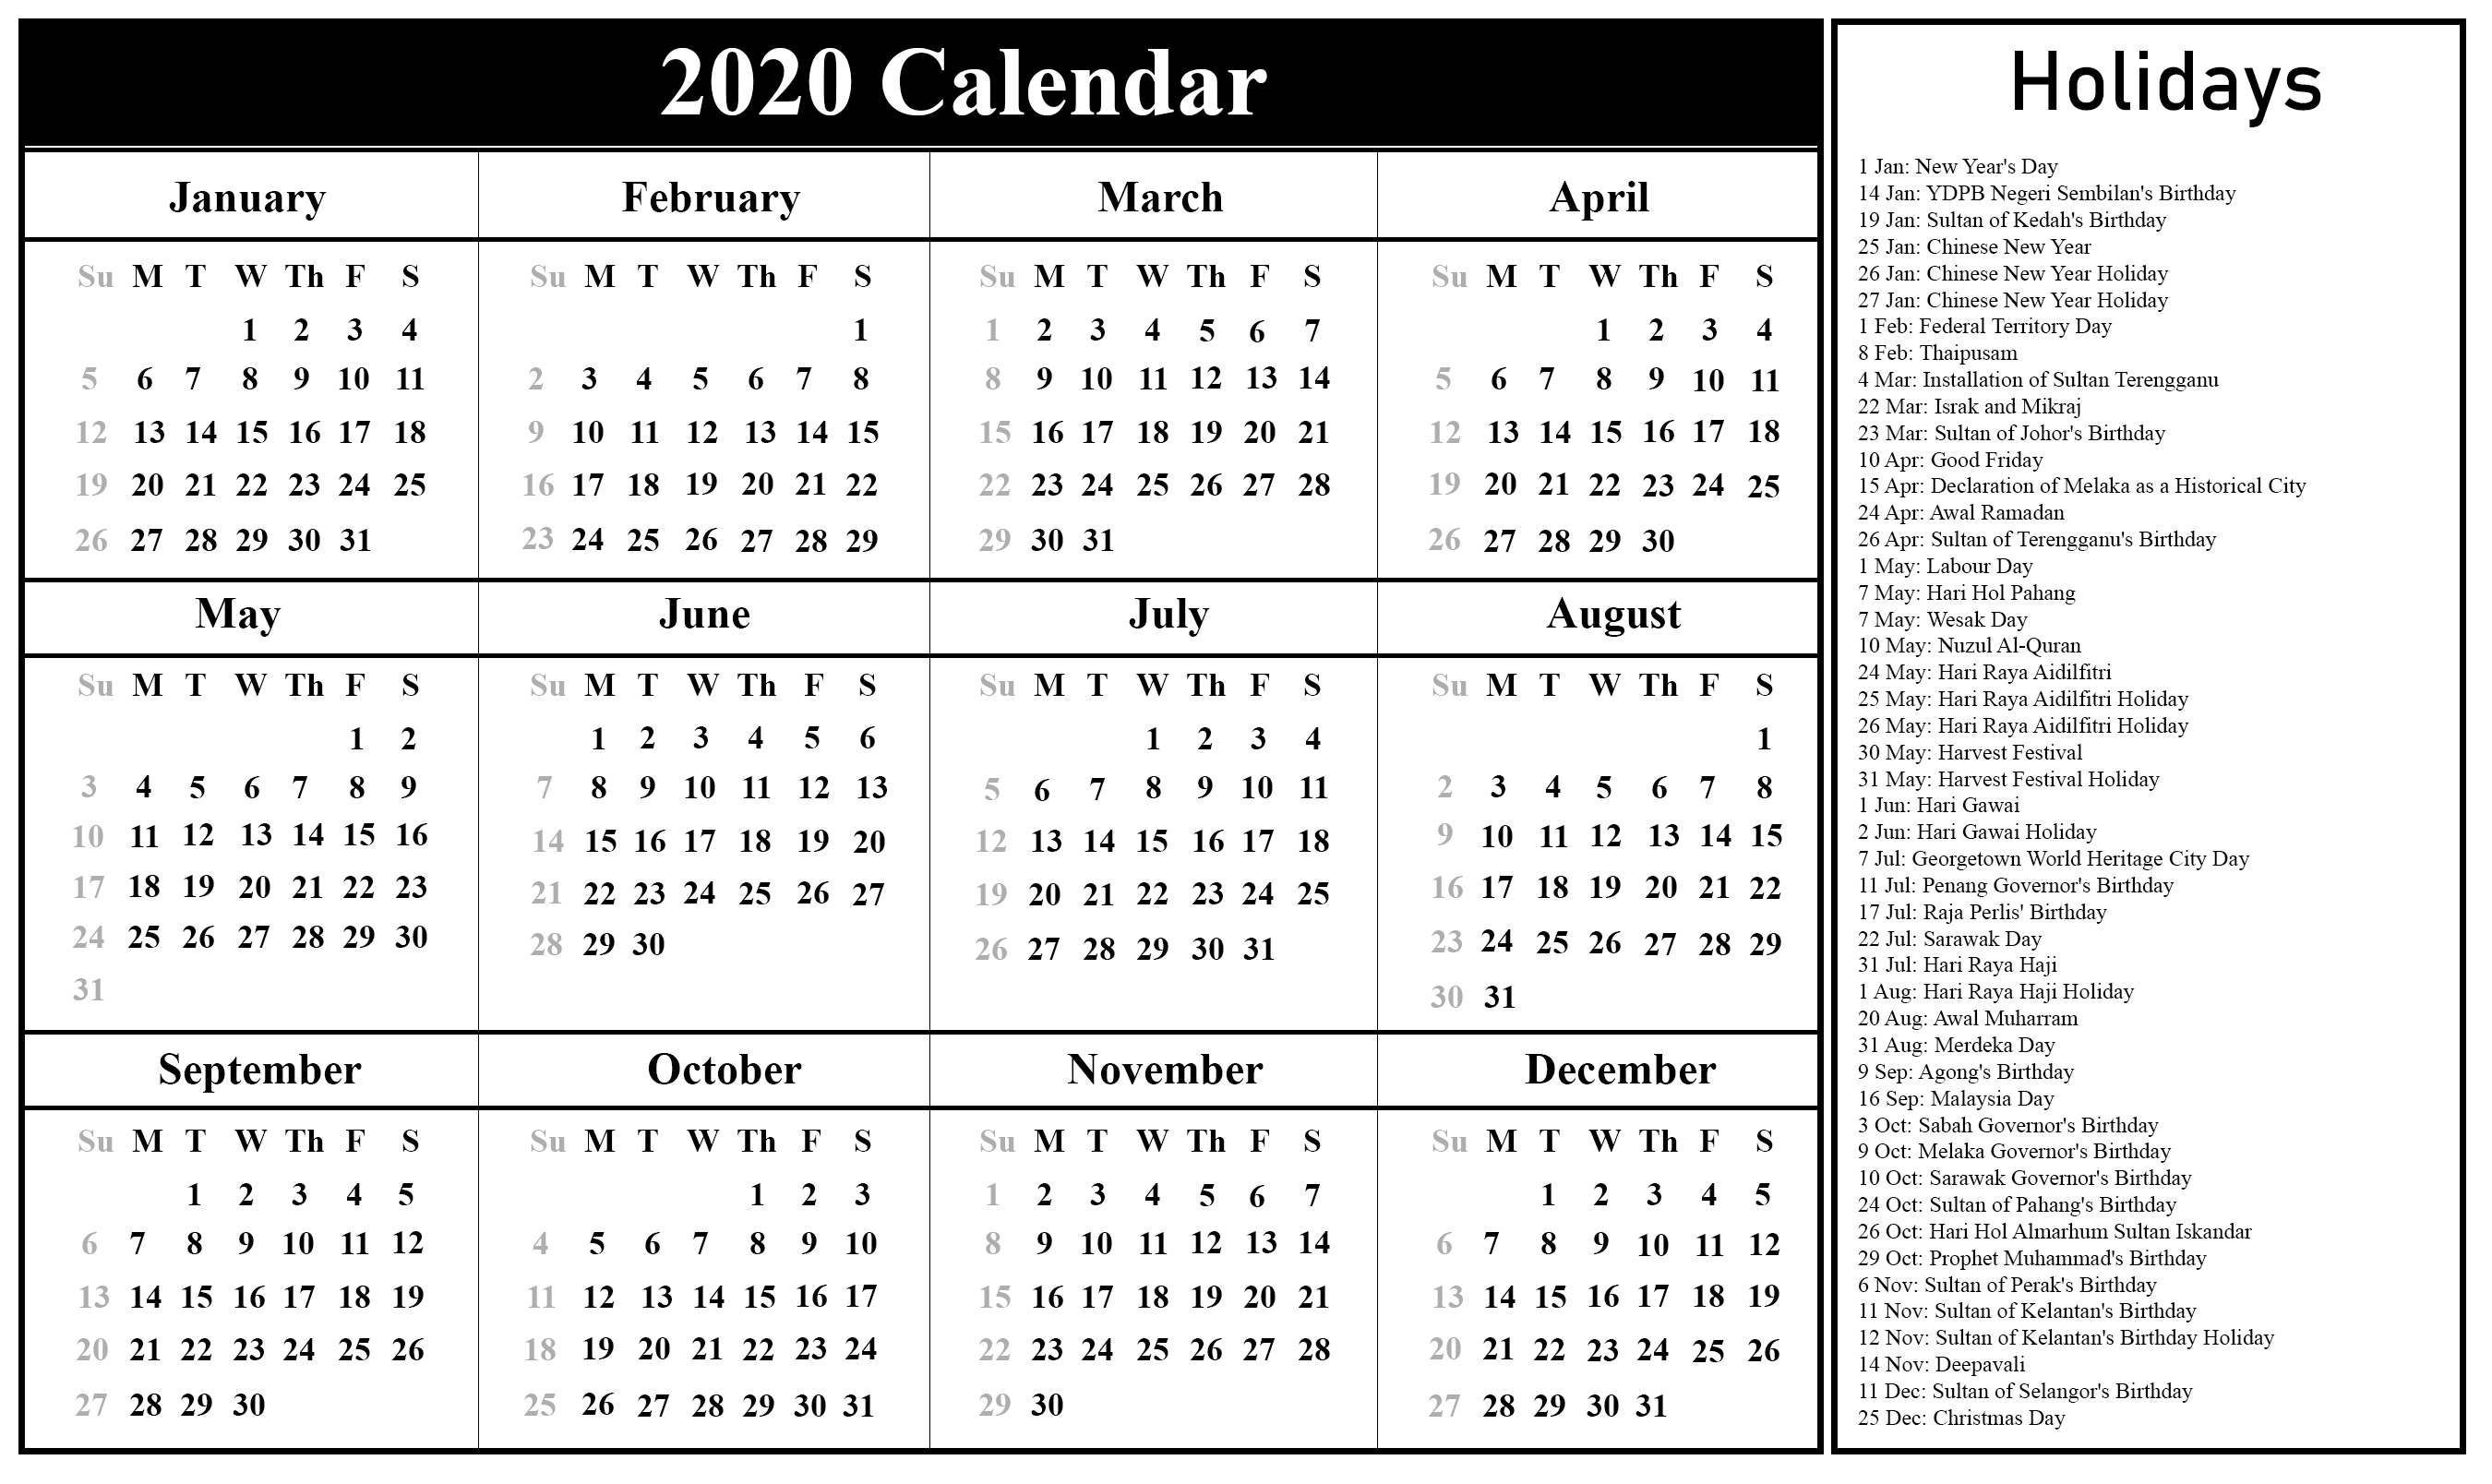 Download Free Blank Malaysia Calendar 2020 Template In Pdf-2022 Calendar Printable With Holidays Malaysia